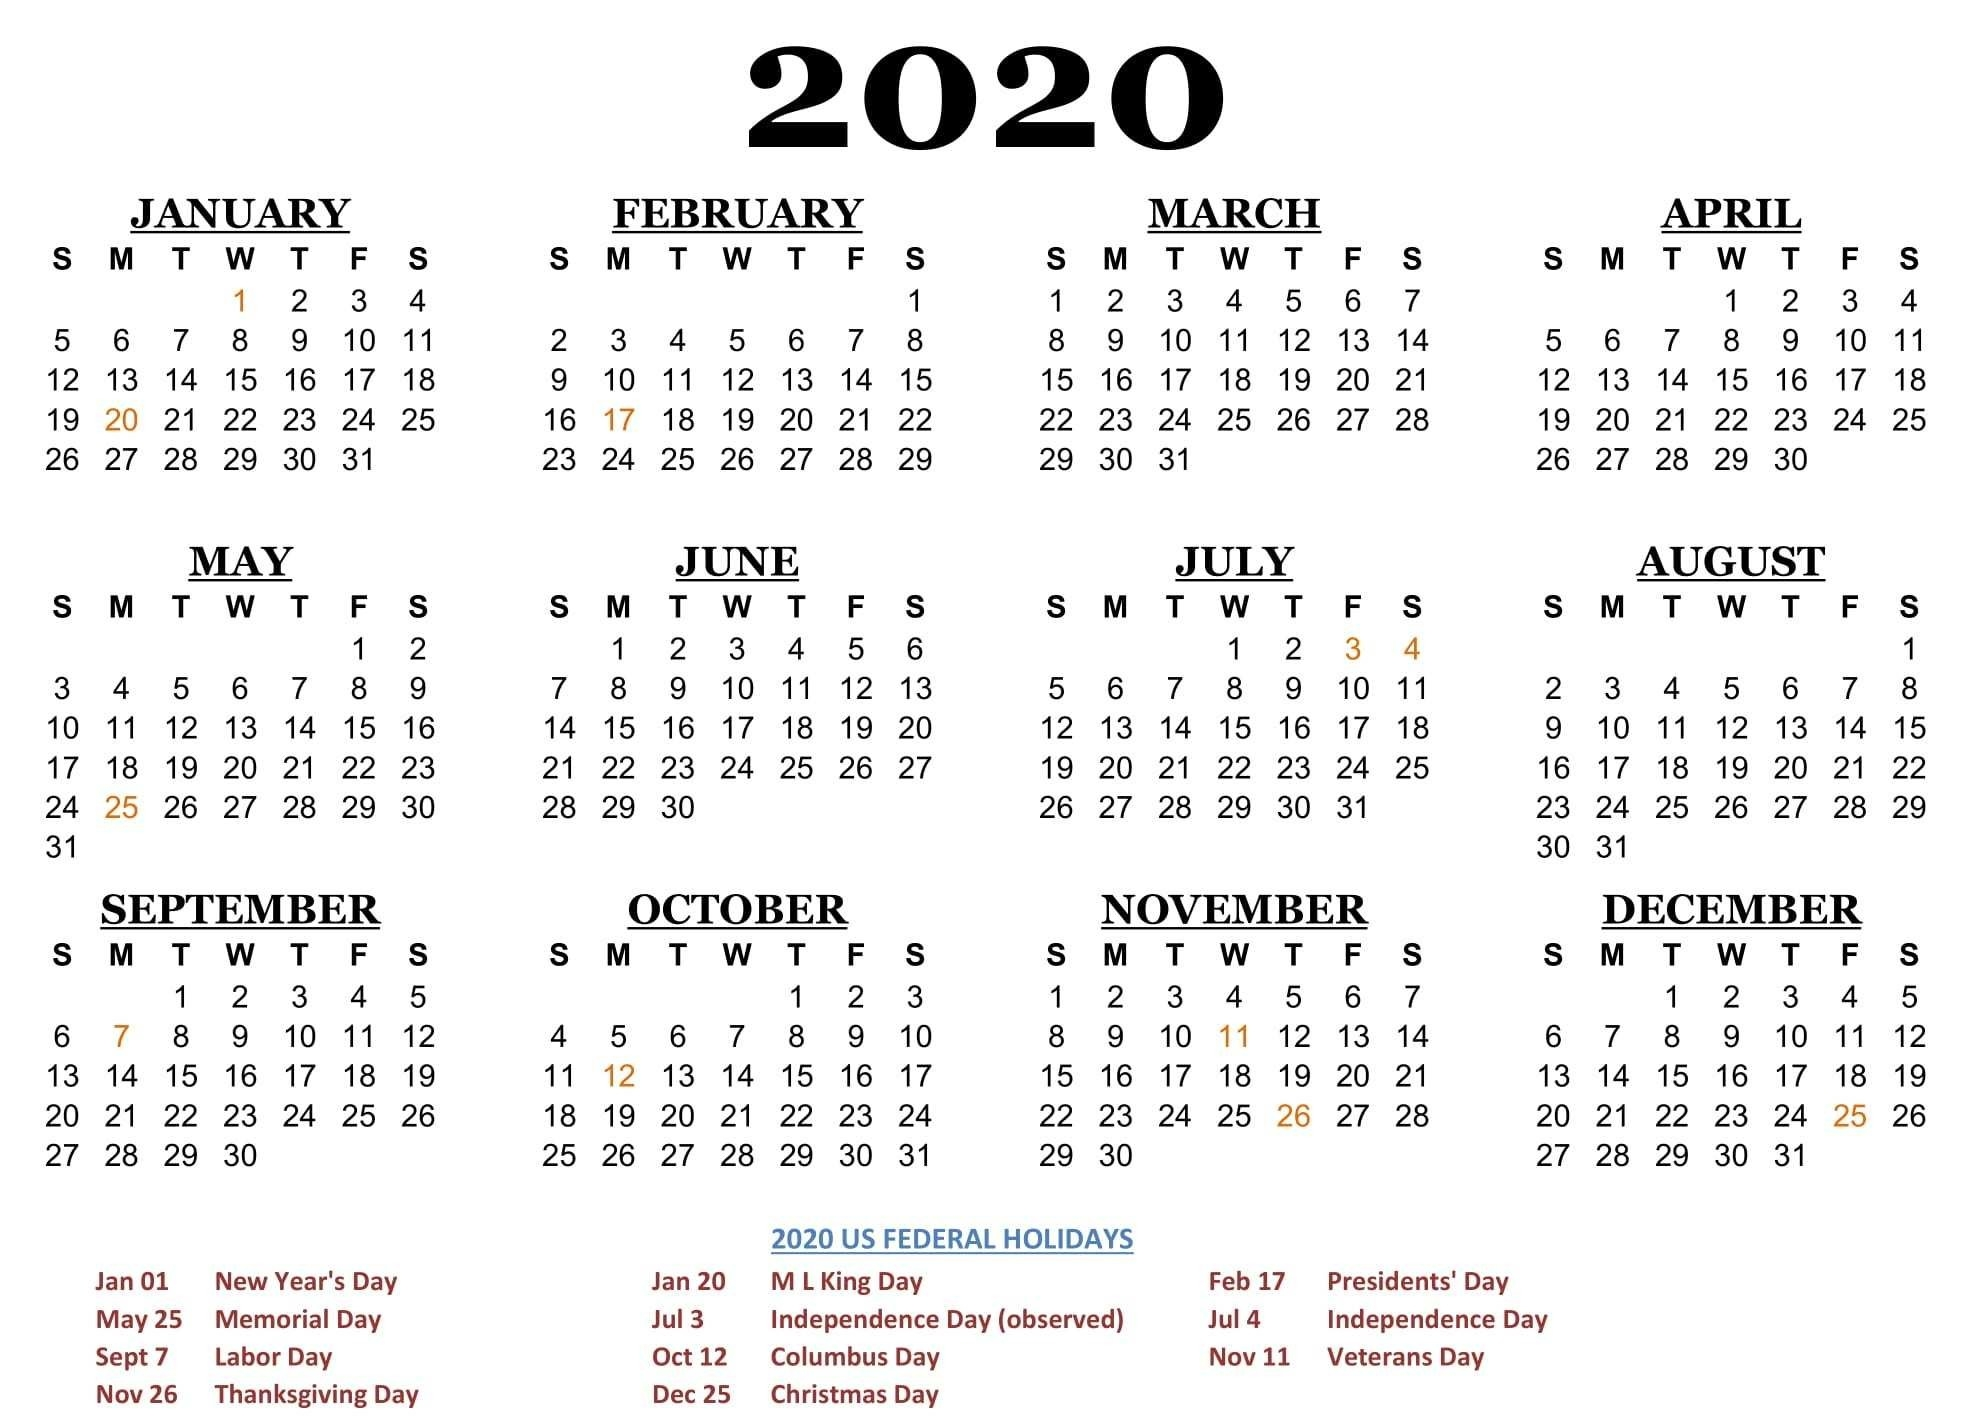 2020 One Page Calendar Printable Download | Calendarbuzz  Calendar 2020 Printable One Page